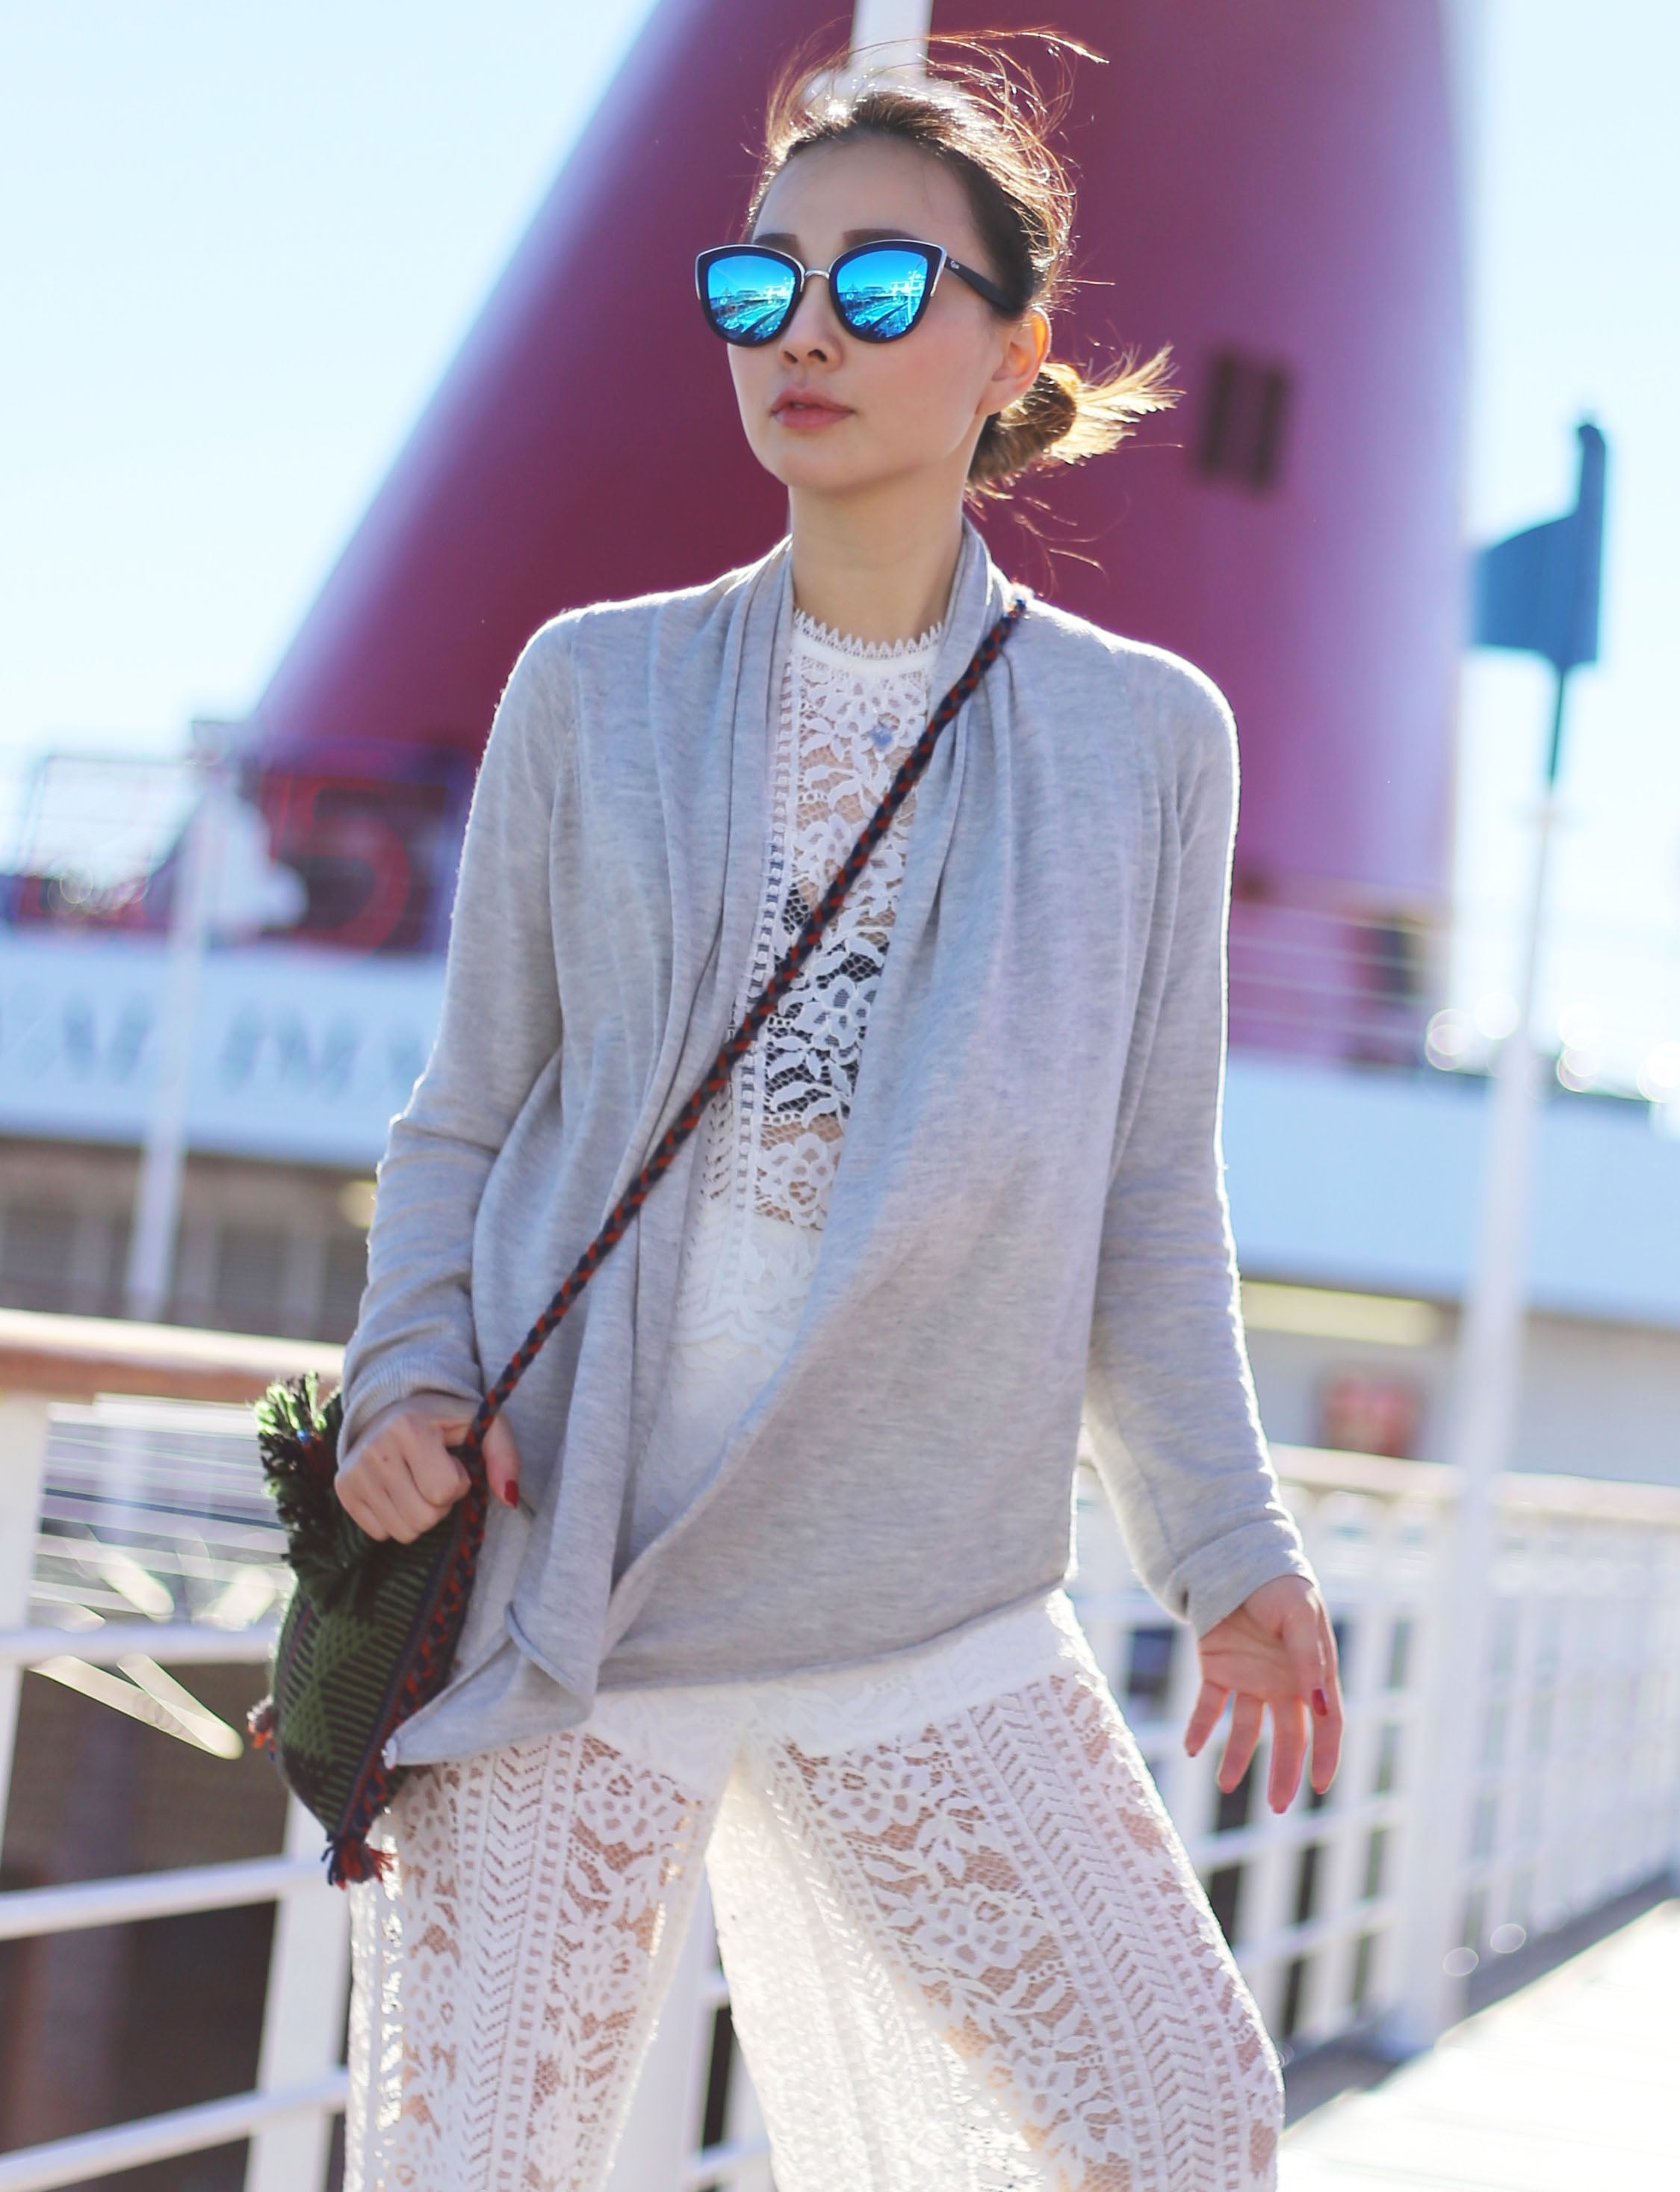 vacation outfit linked jewelry 6.jpg